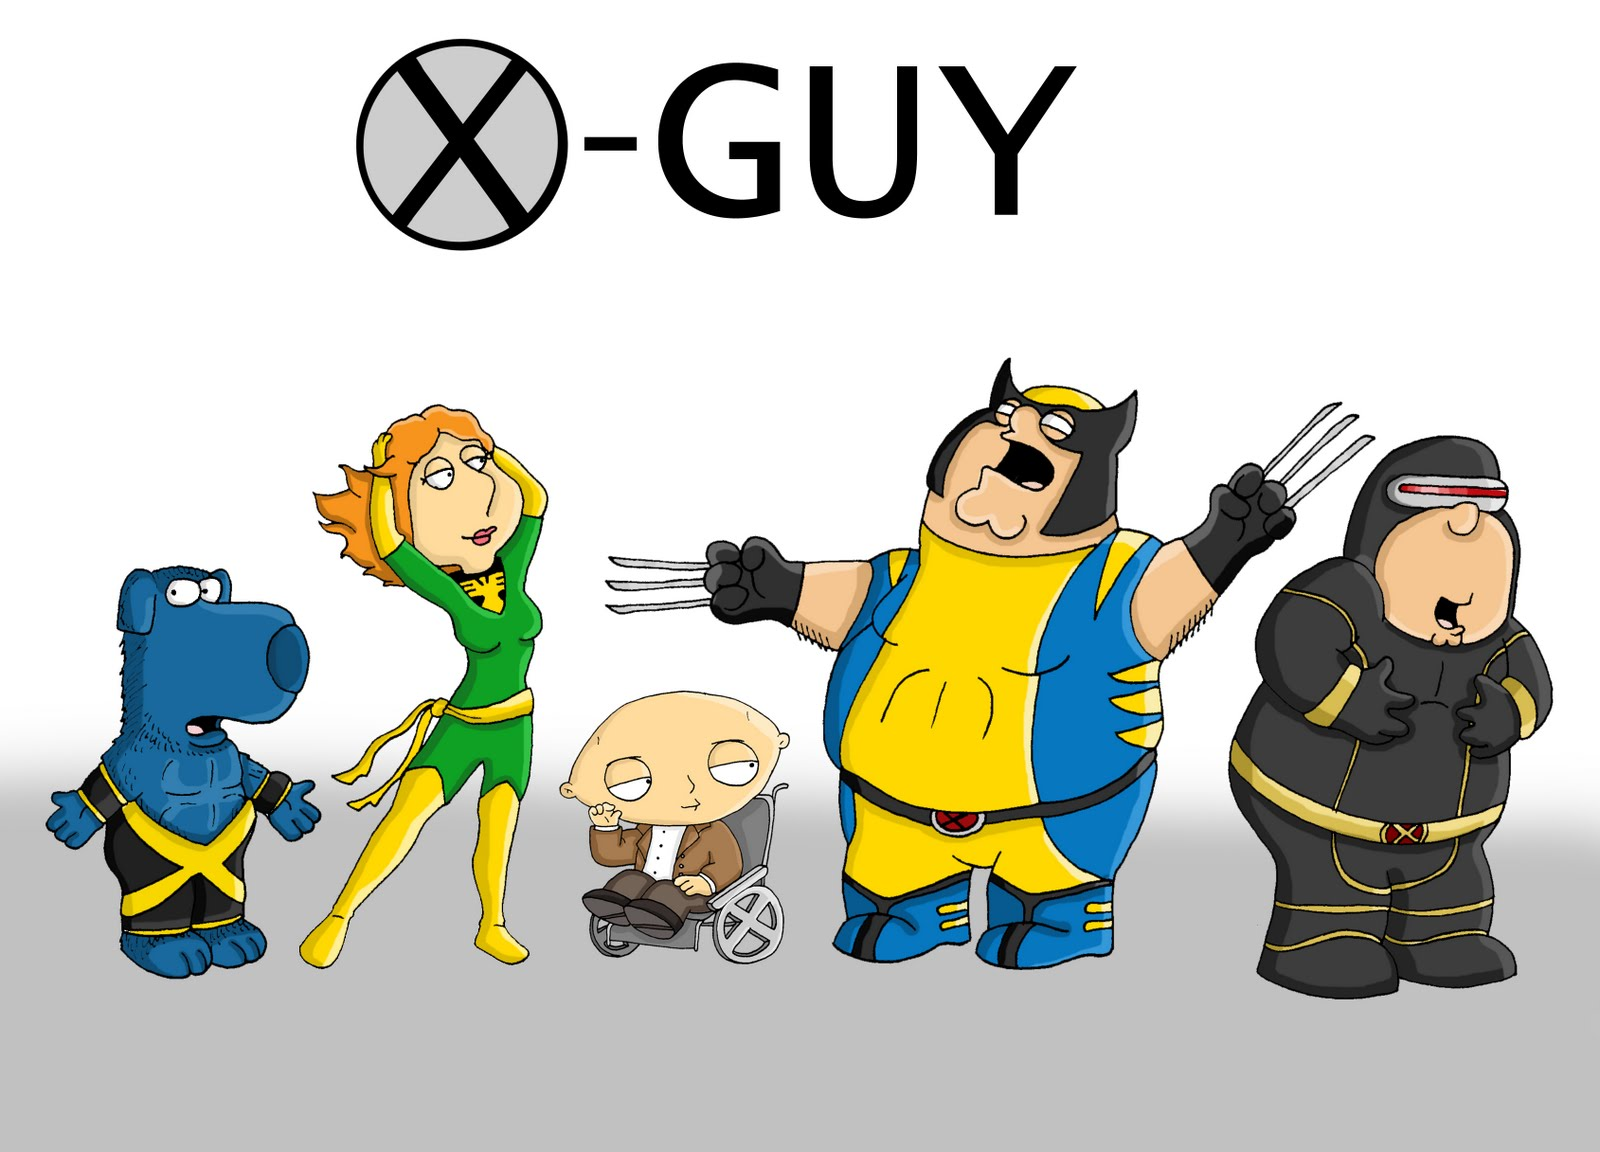 Family Guy X Men Final Image 1600x1152